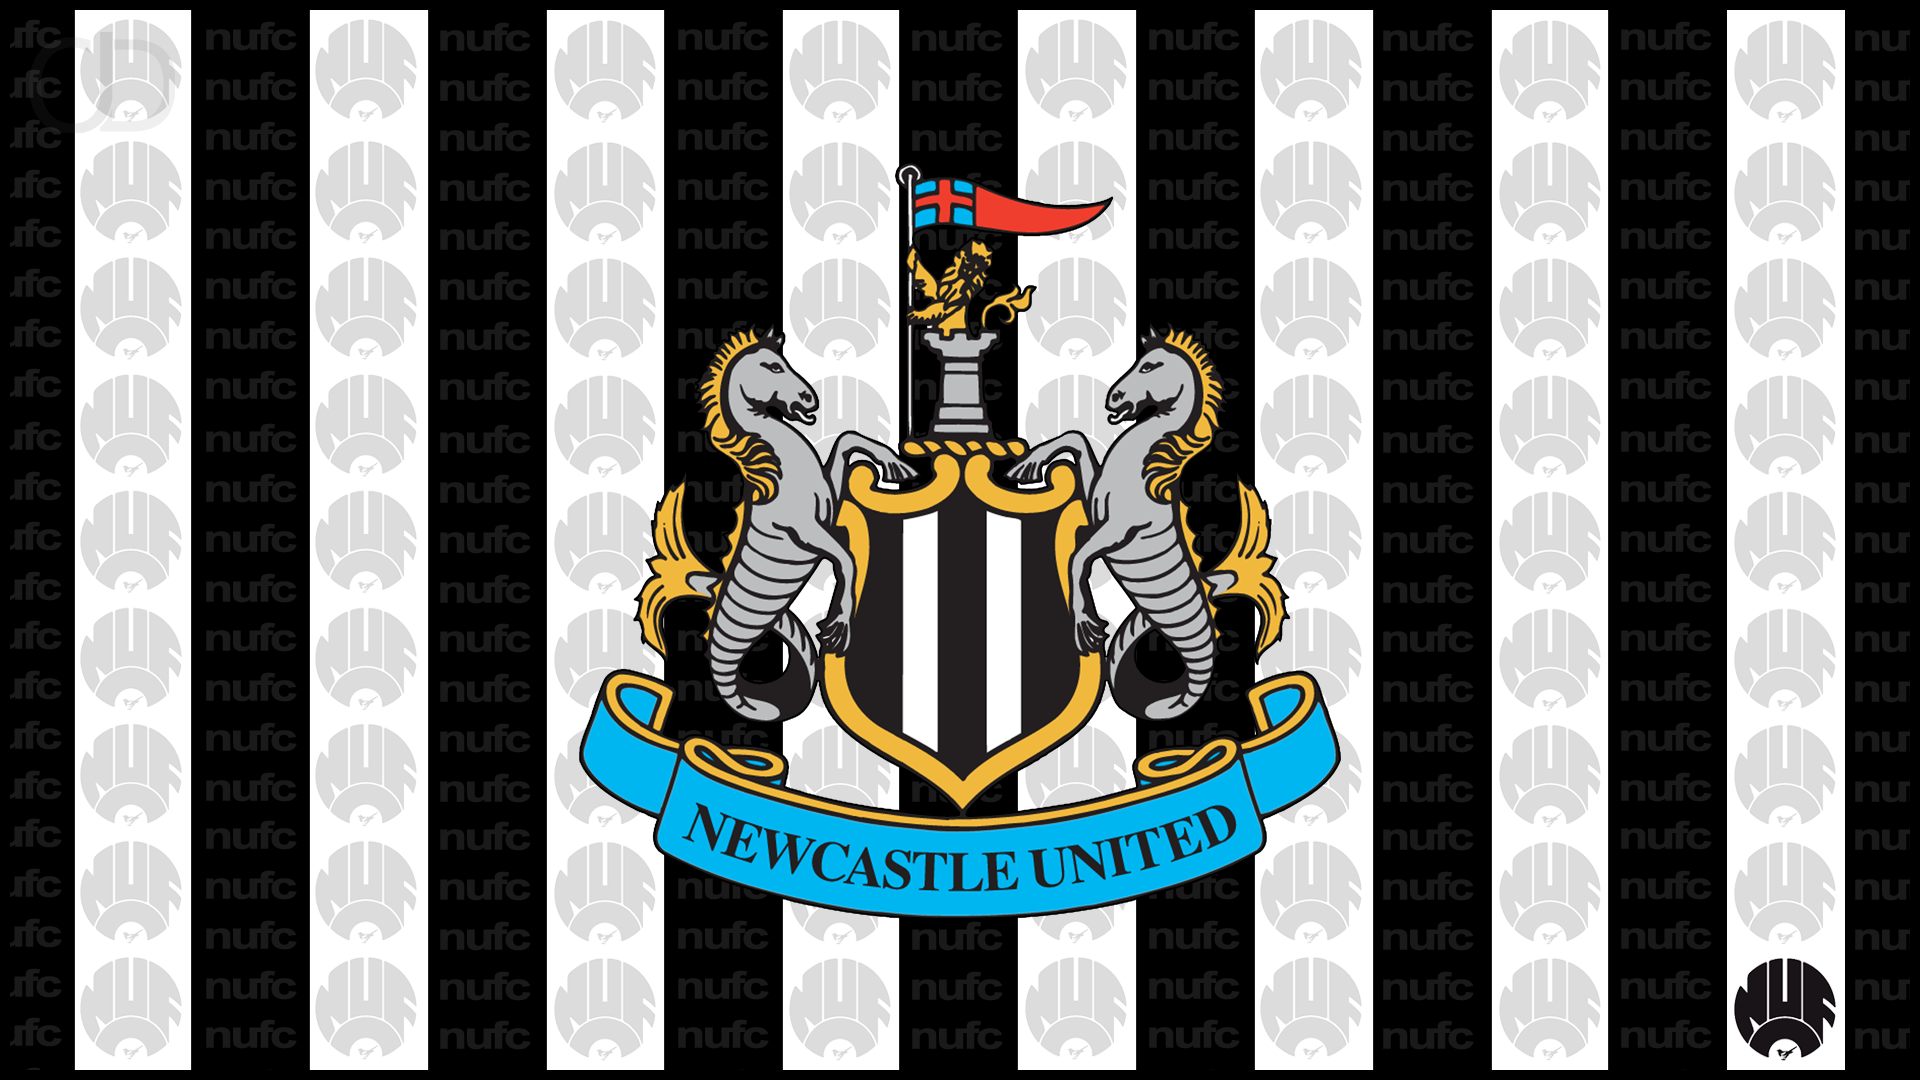 Newcastle United FC Symbol Wallpaper